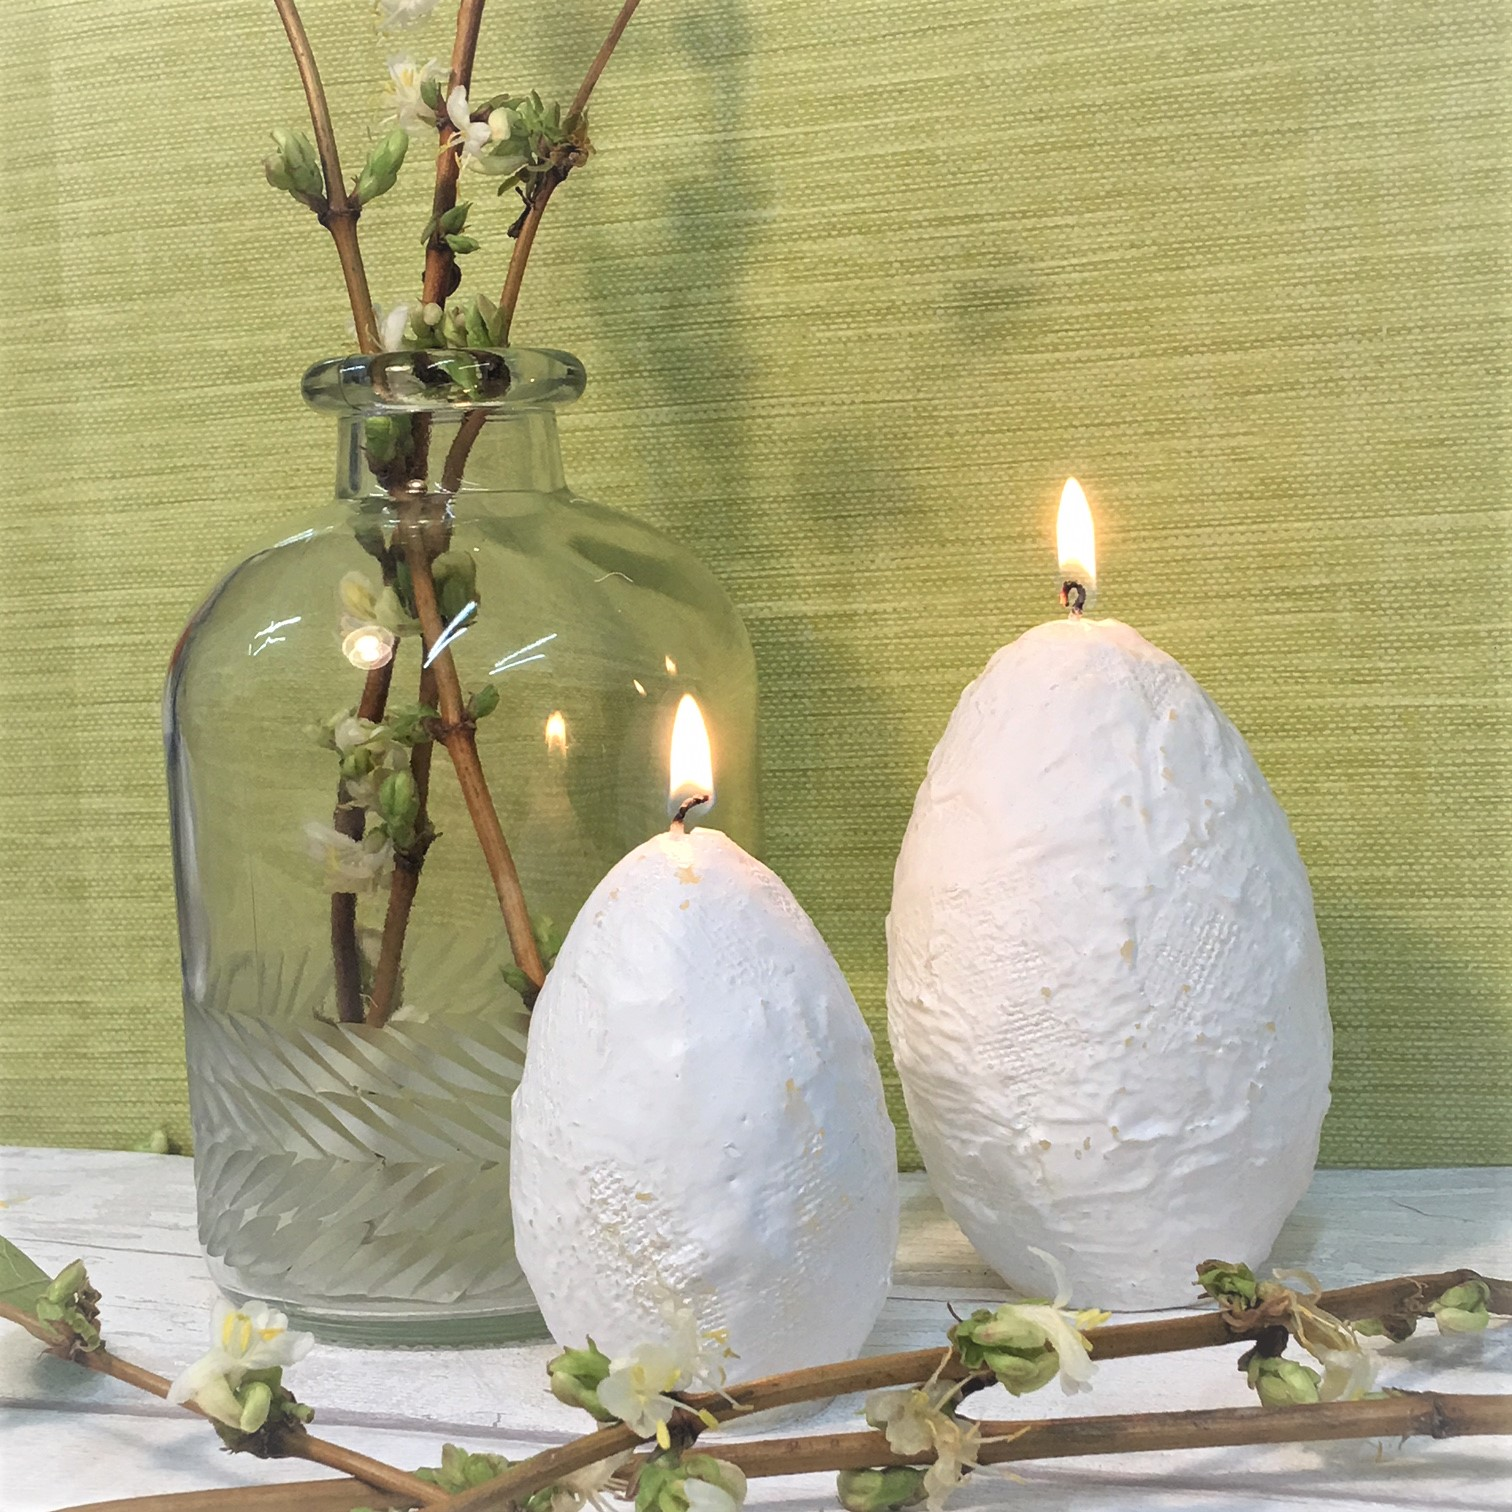 Lene bjerre large luxury easter egg candle ideal easter gift 12cm lene bjerre large luxury easter egg candle ideal easter gift 12cm 20 hours burn negle Image collections